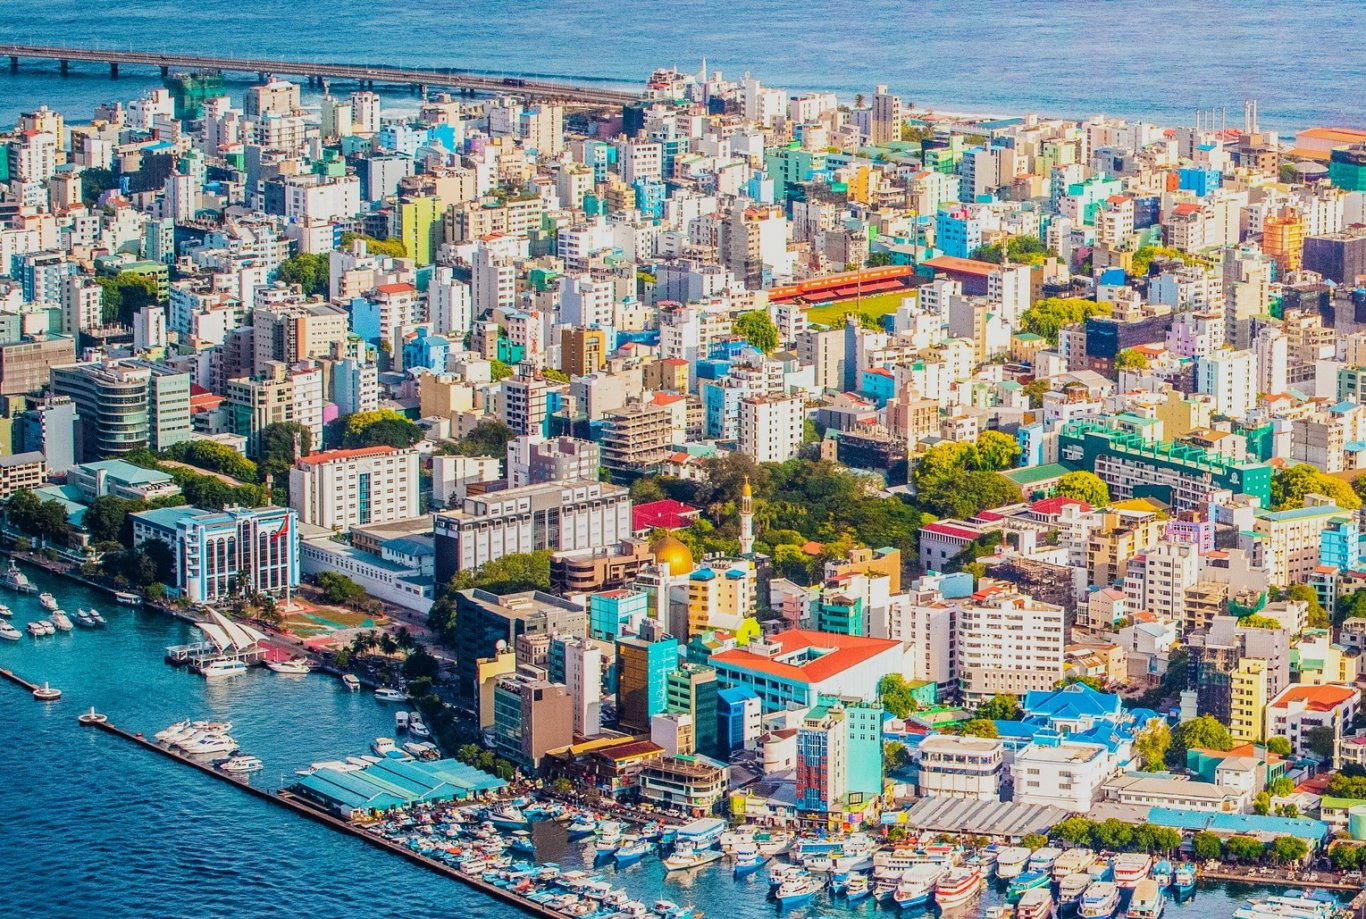 A drone shot of the capital city Male, in the Maldives showing different coloured buildings and the harbour in view.